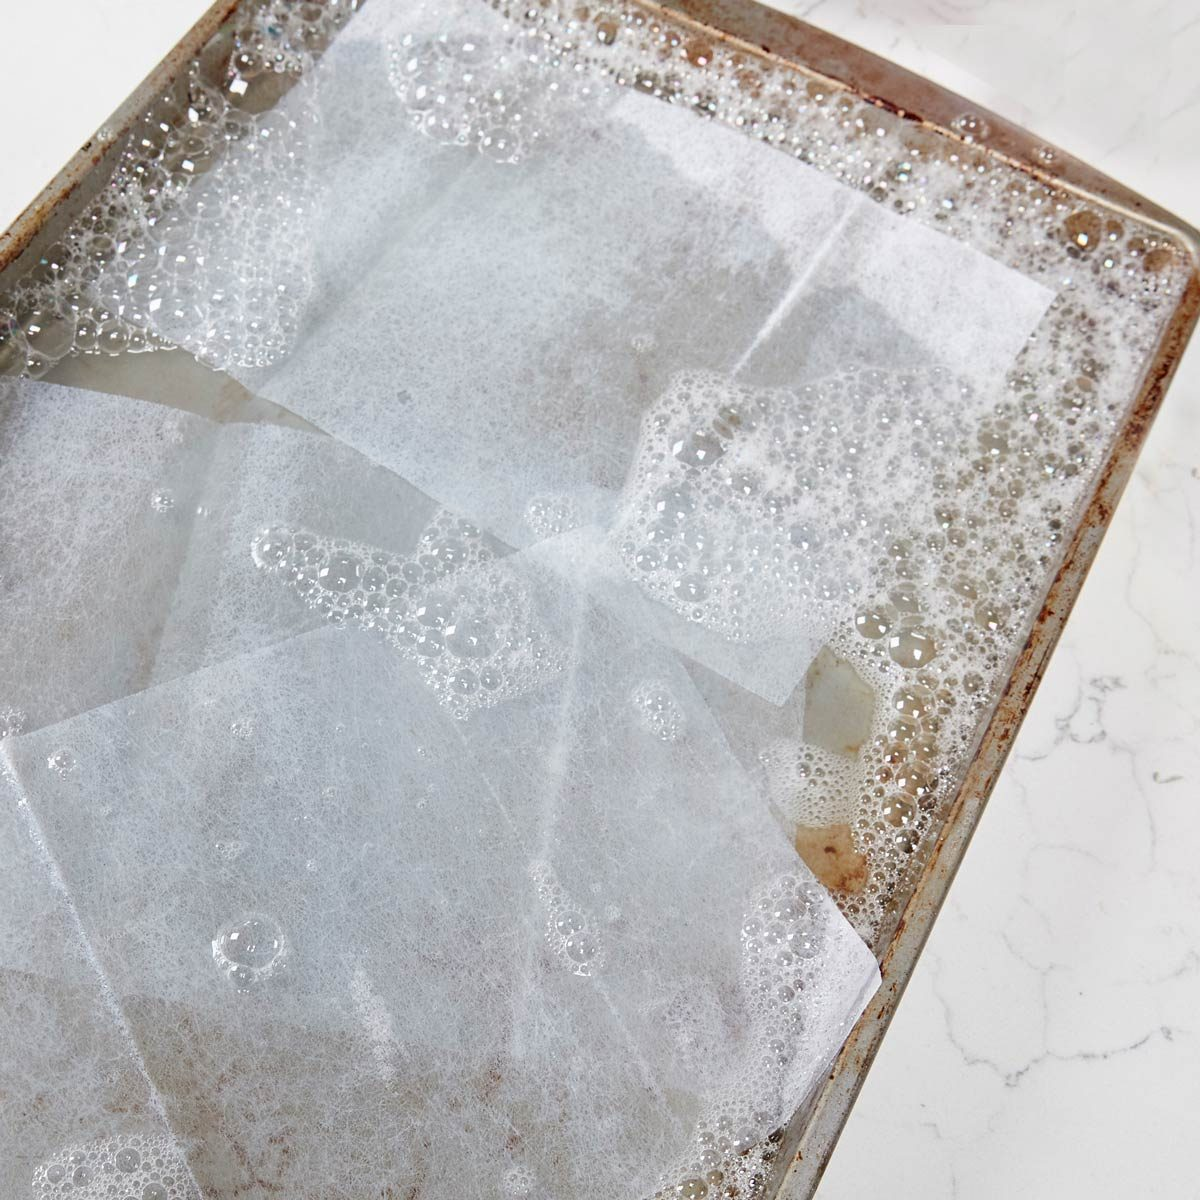 HH soak burnt pan with dryer sheets